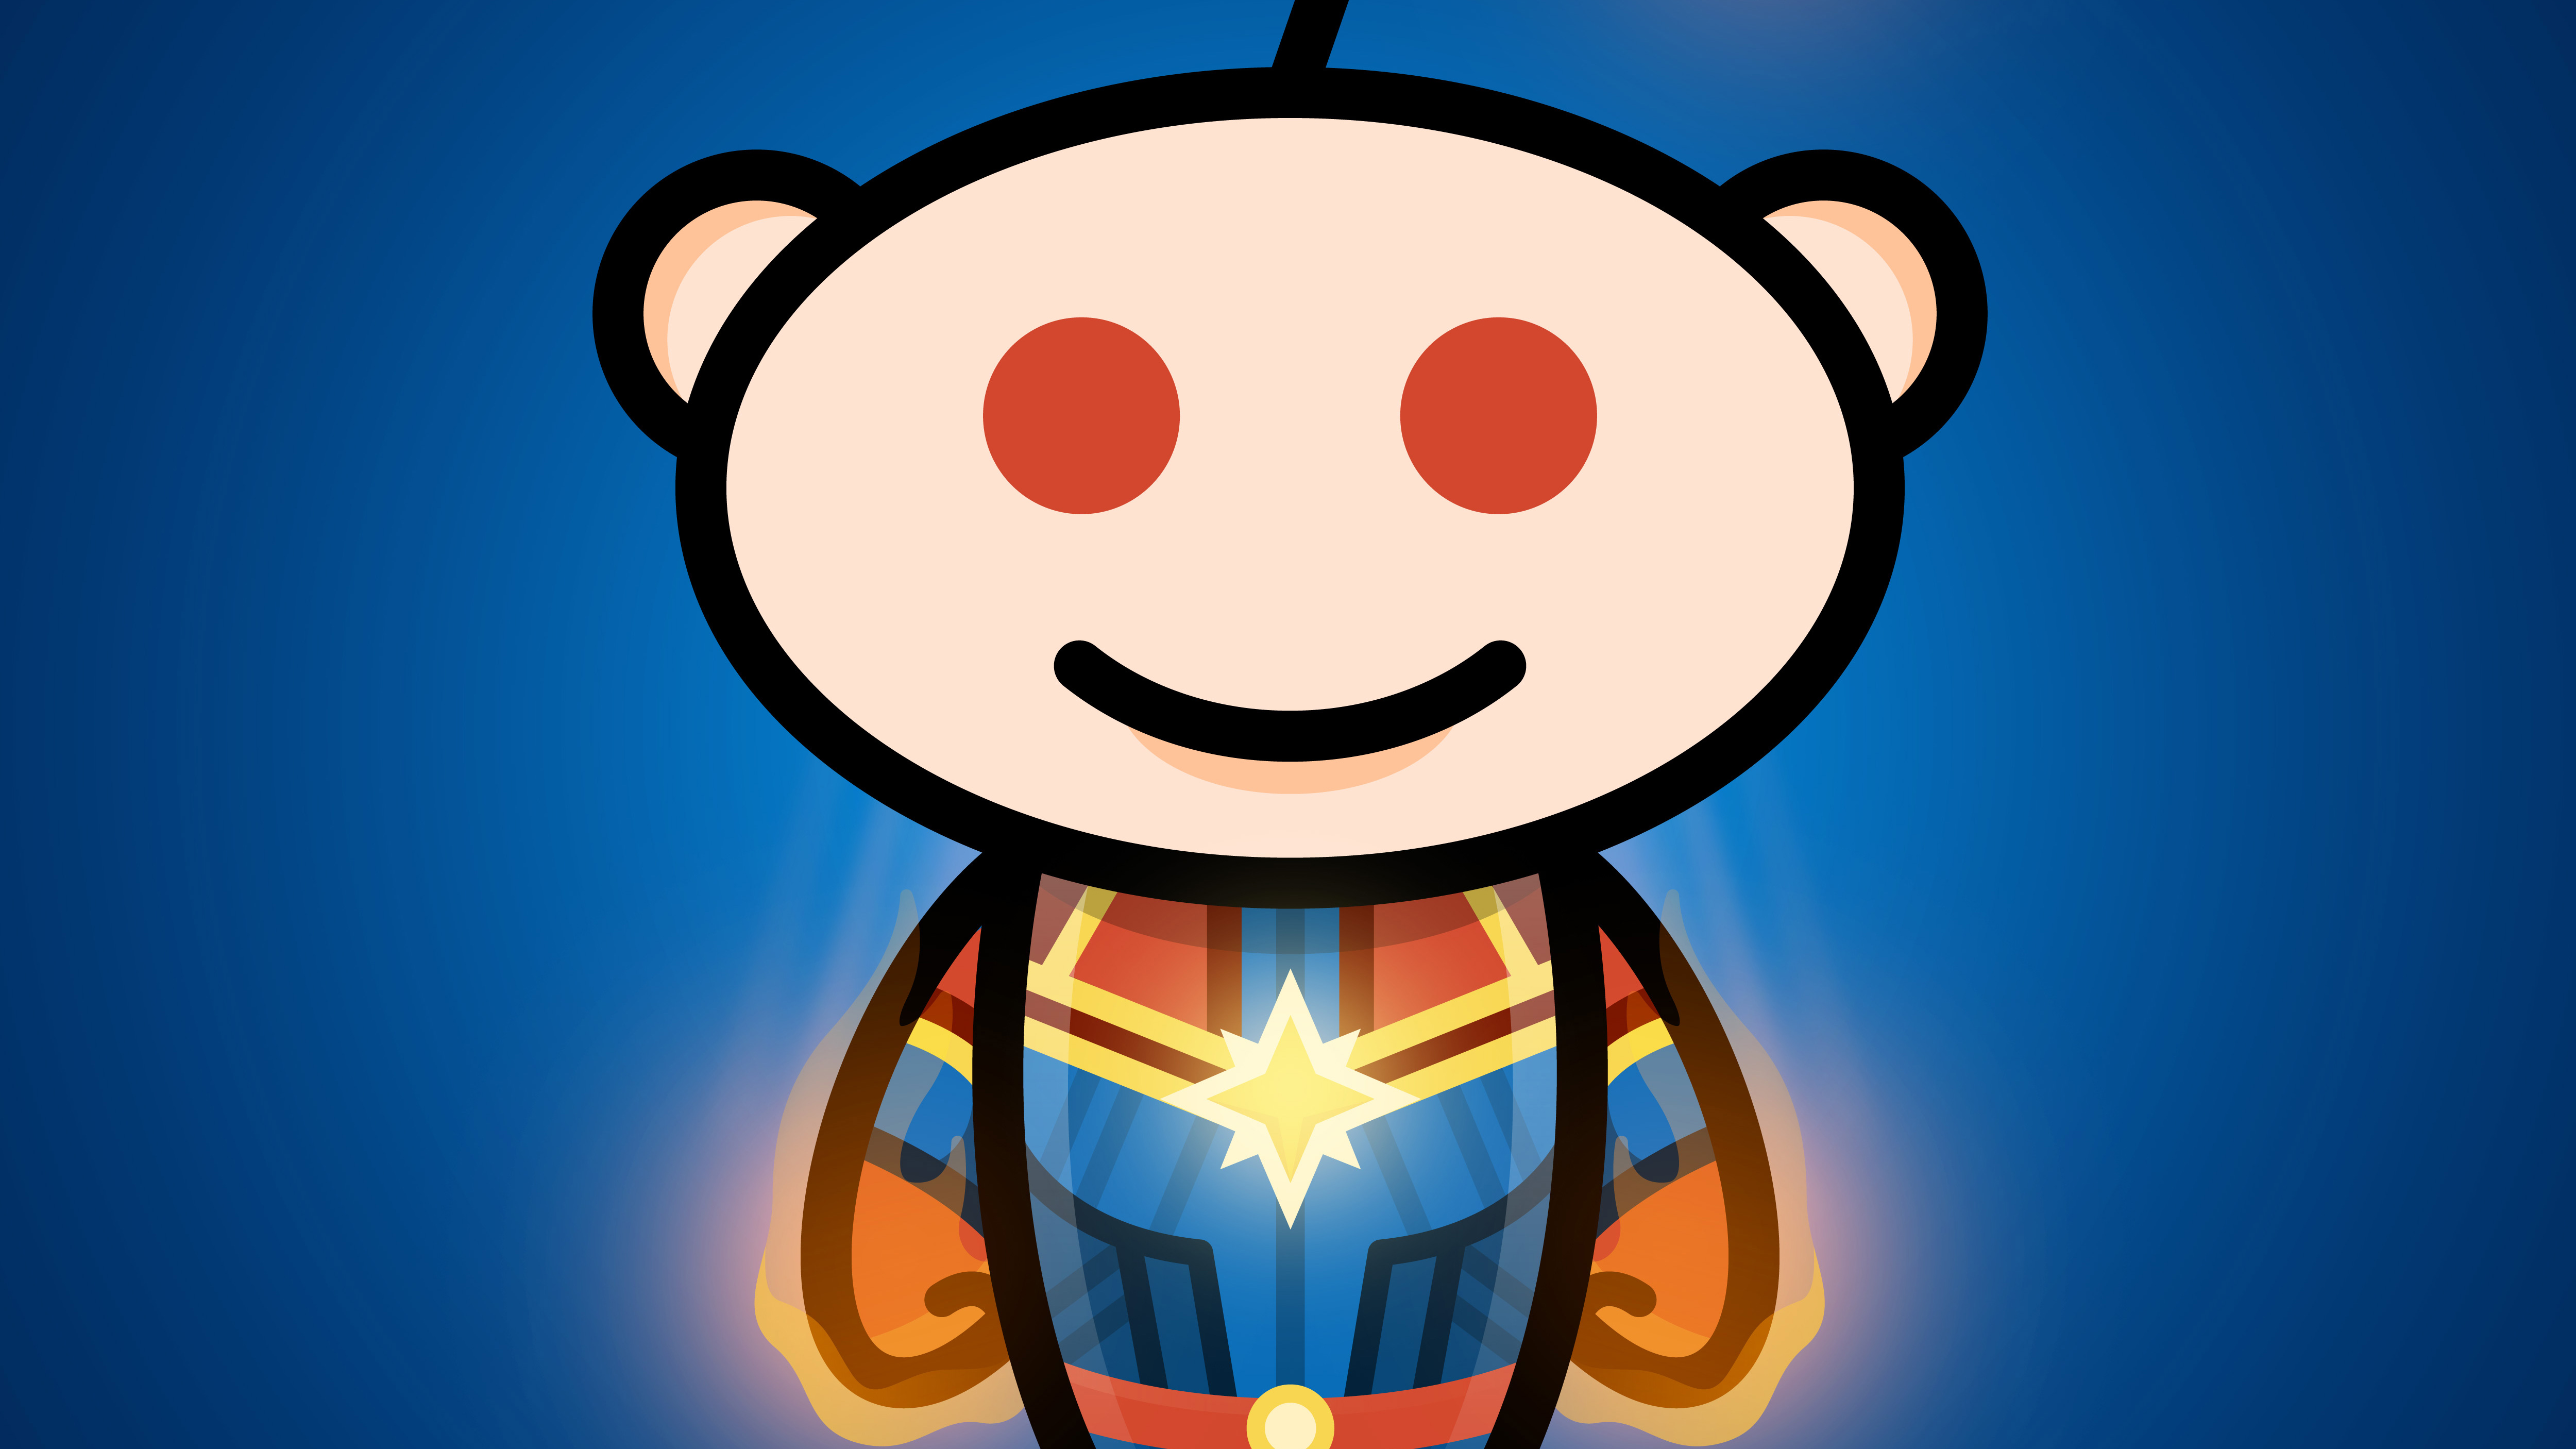 2560x1440 reddit captain marvel artwork 1440p resolution hd 4k wallpapers images backgrounds photos and pictures hdqwalls